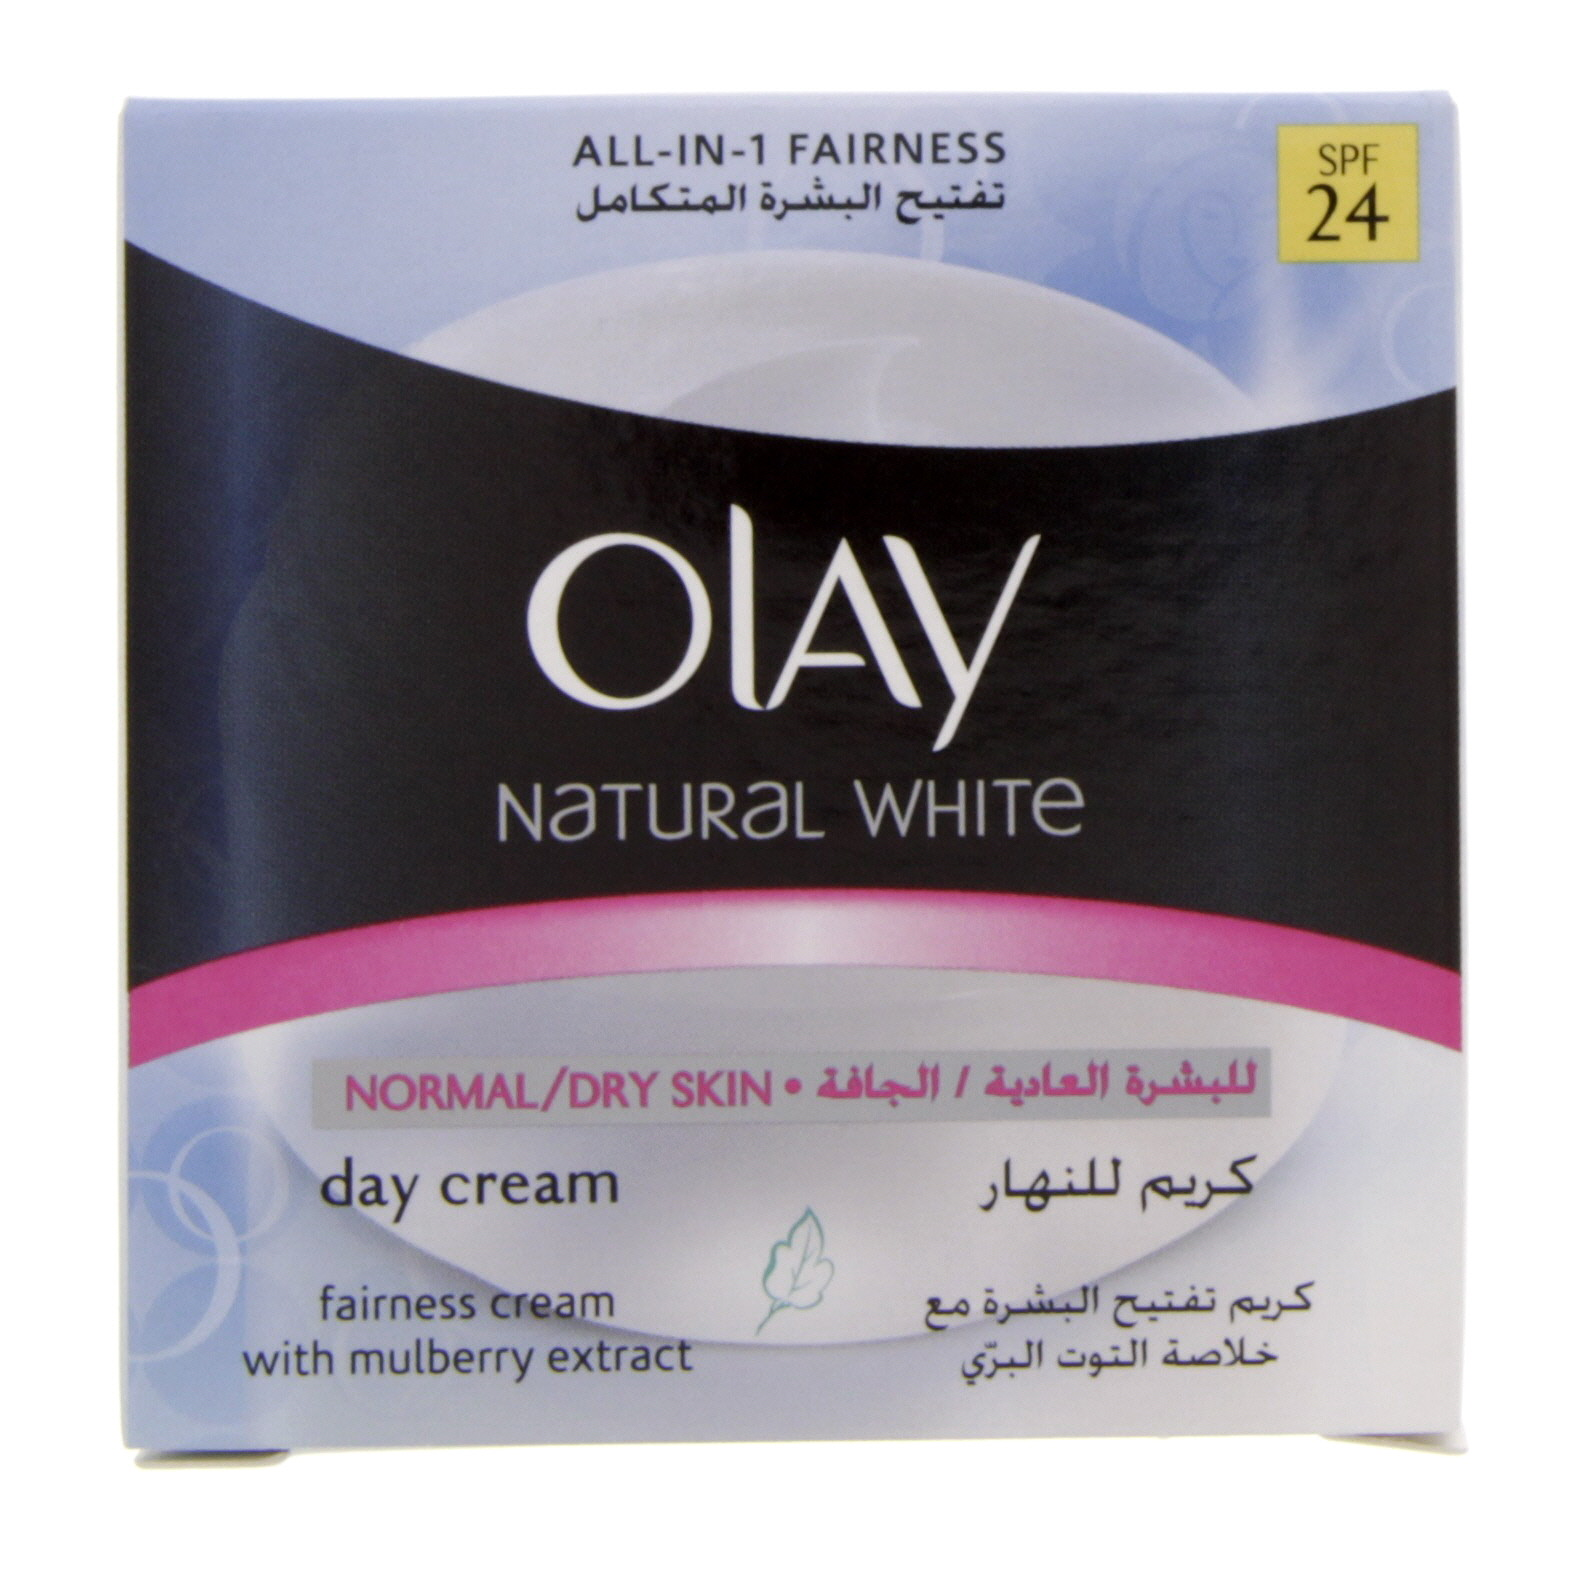 Olay Essentials Double Action Normal And Dry Skin Day Cream 50ml Ponds Flawles Night Natural White Spf 24 100gm